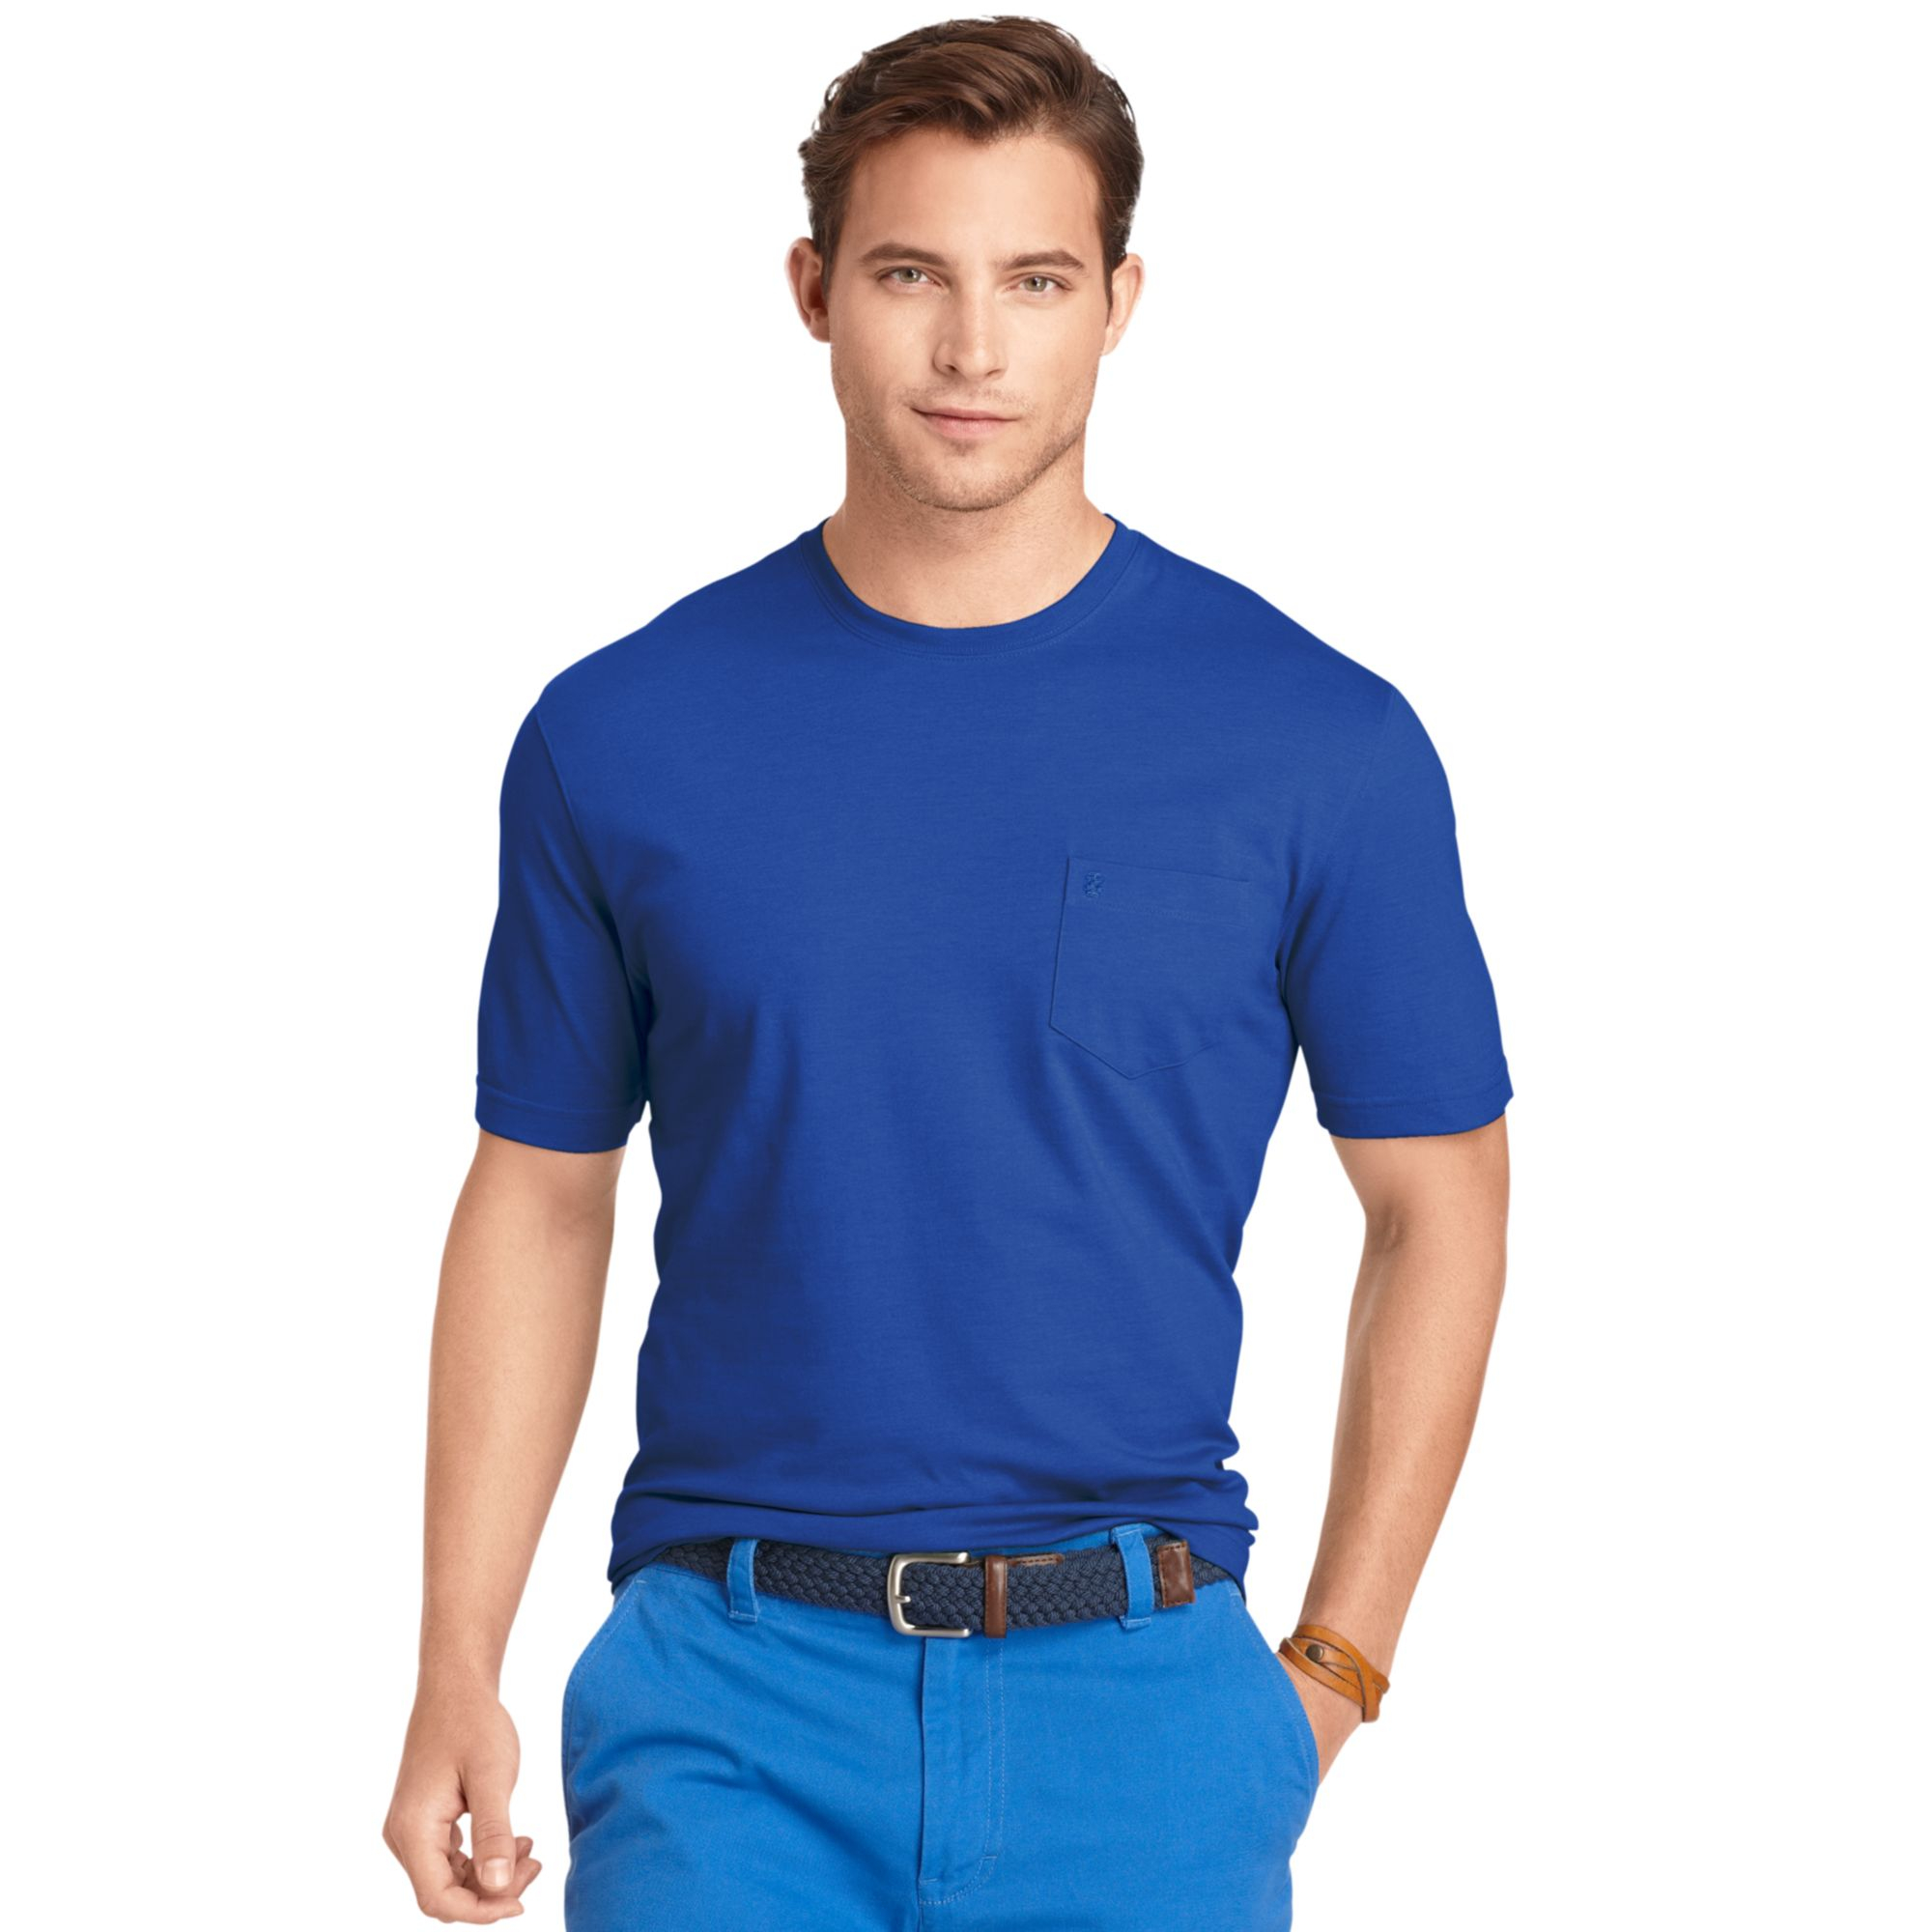 Izod big and tall solid tshirt in blue for men strong for Izod big and tall shirts